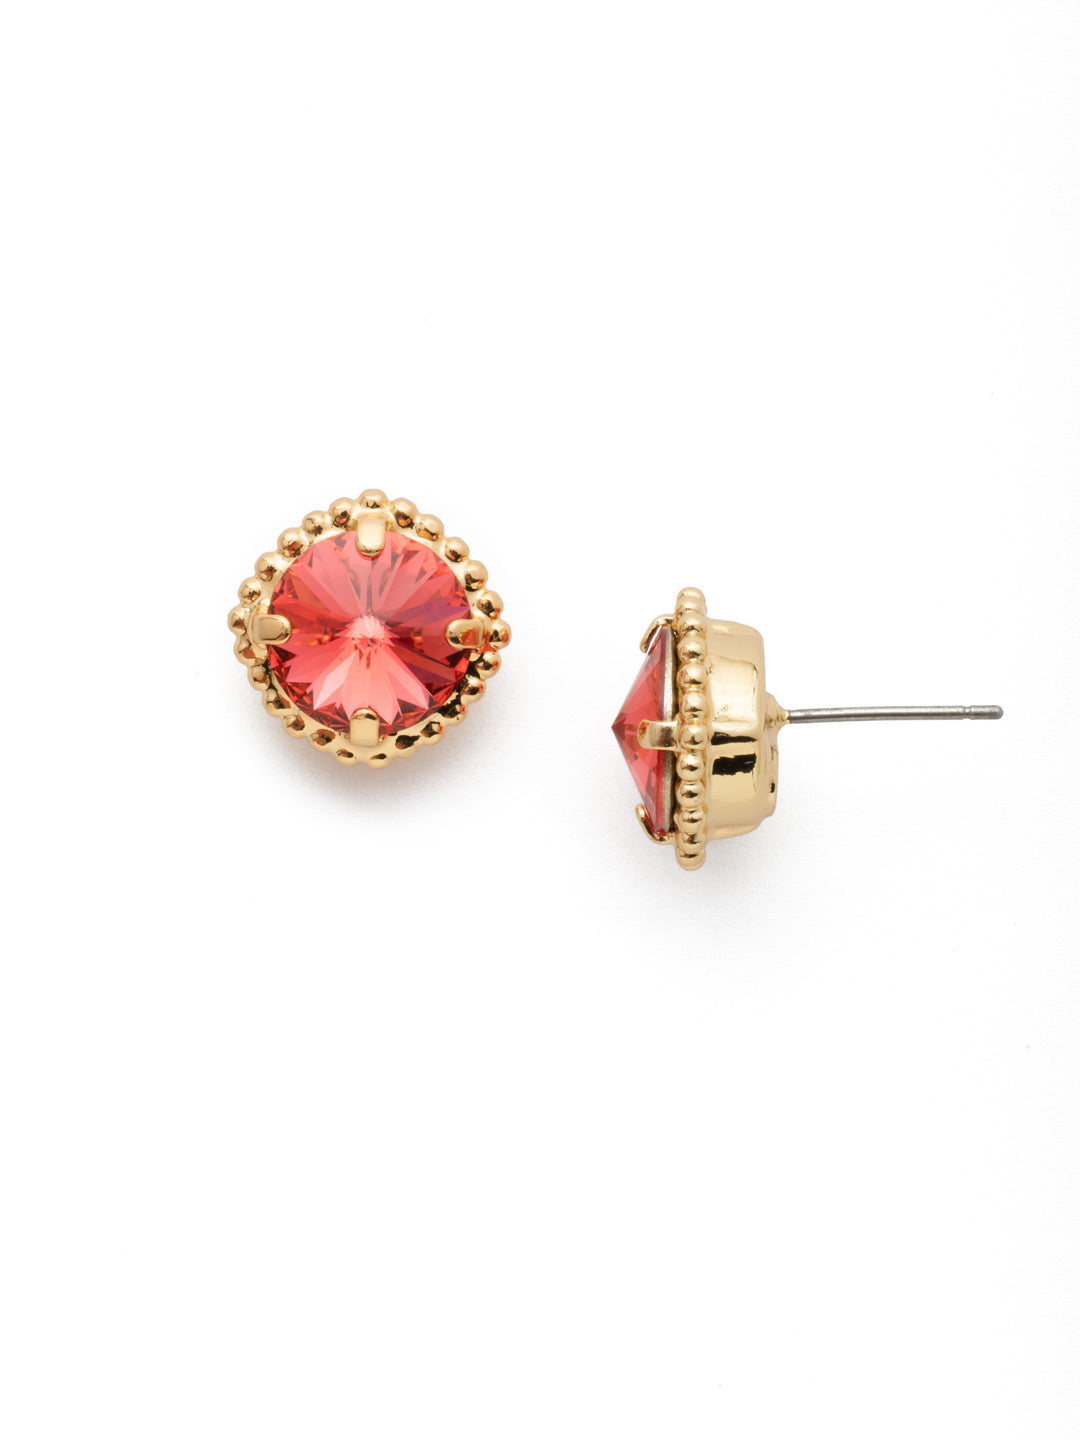 Soleil Stud Earrings - EEF94BGBGA